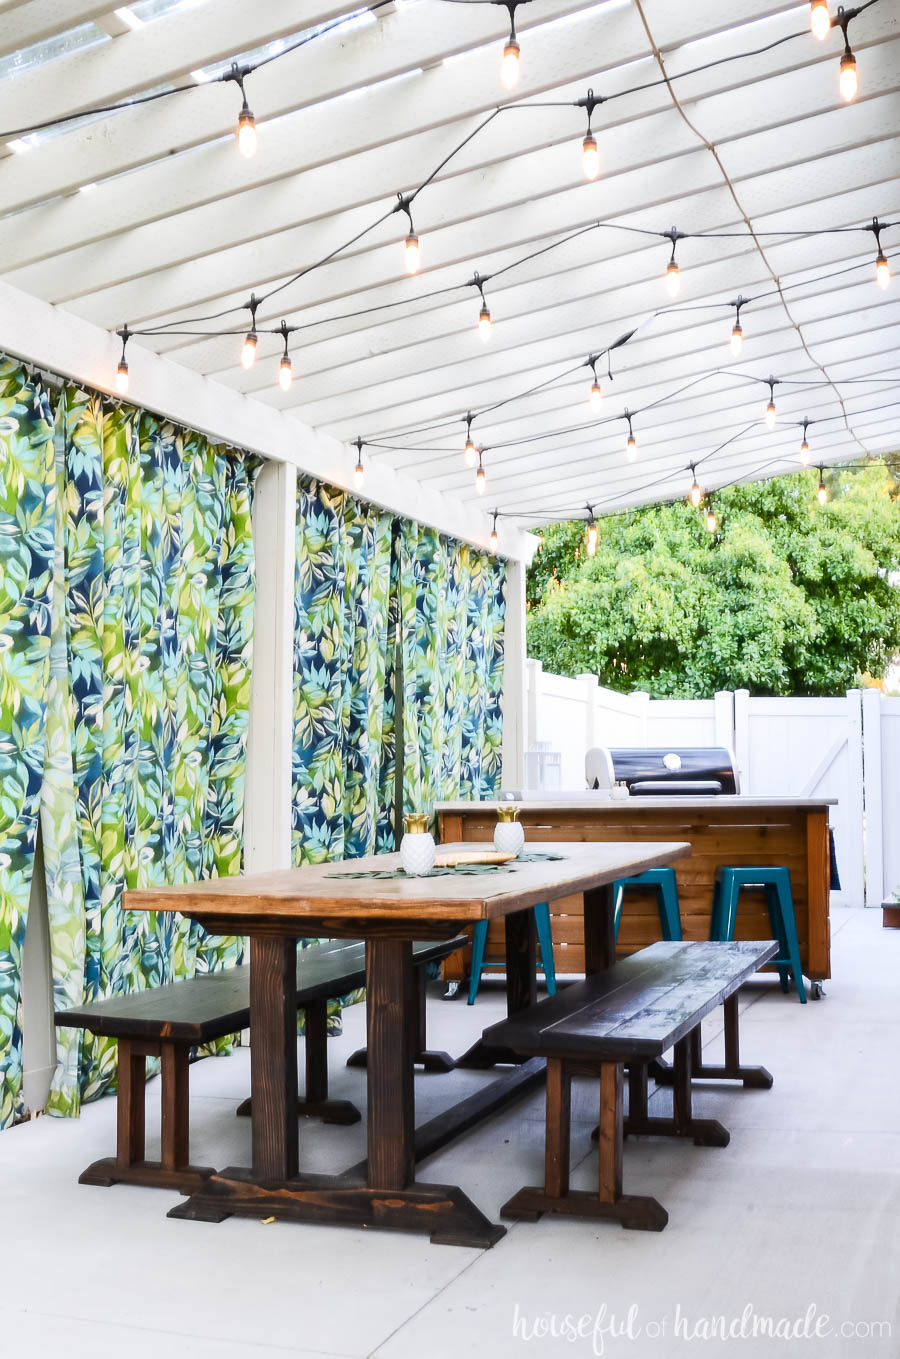 White pergola with lights over a large outdoor dining table with benches. Outdoor kitchen island next to the grill in the background.